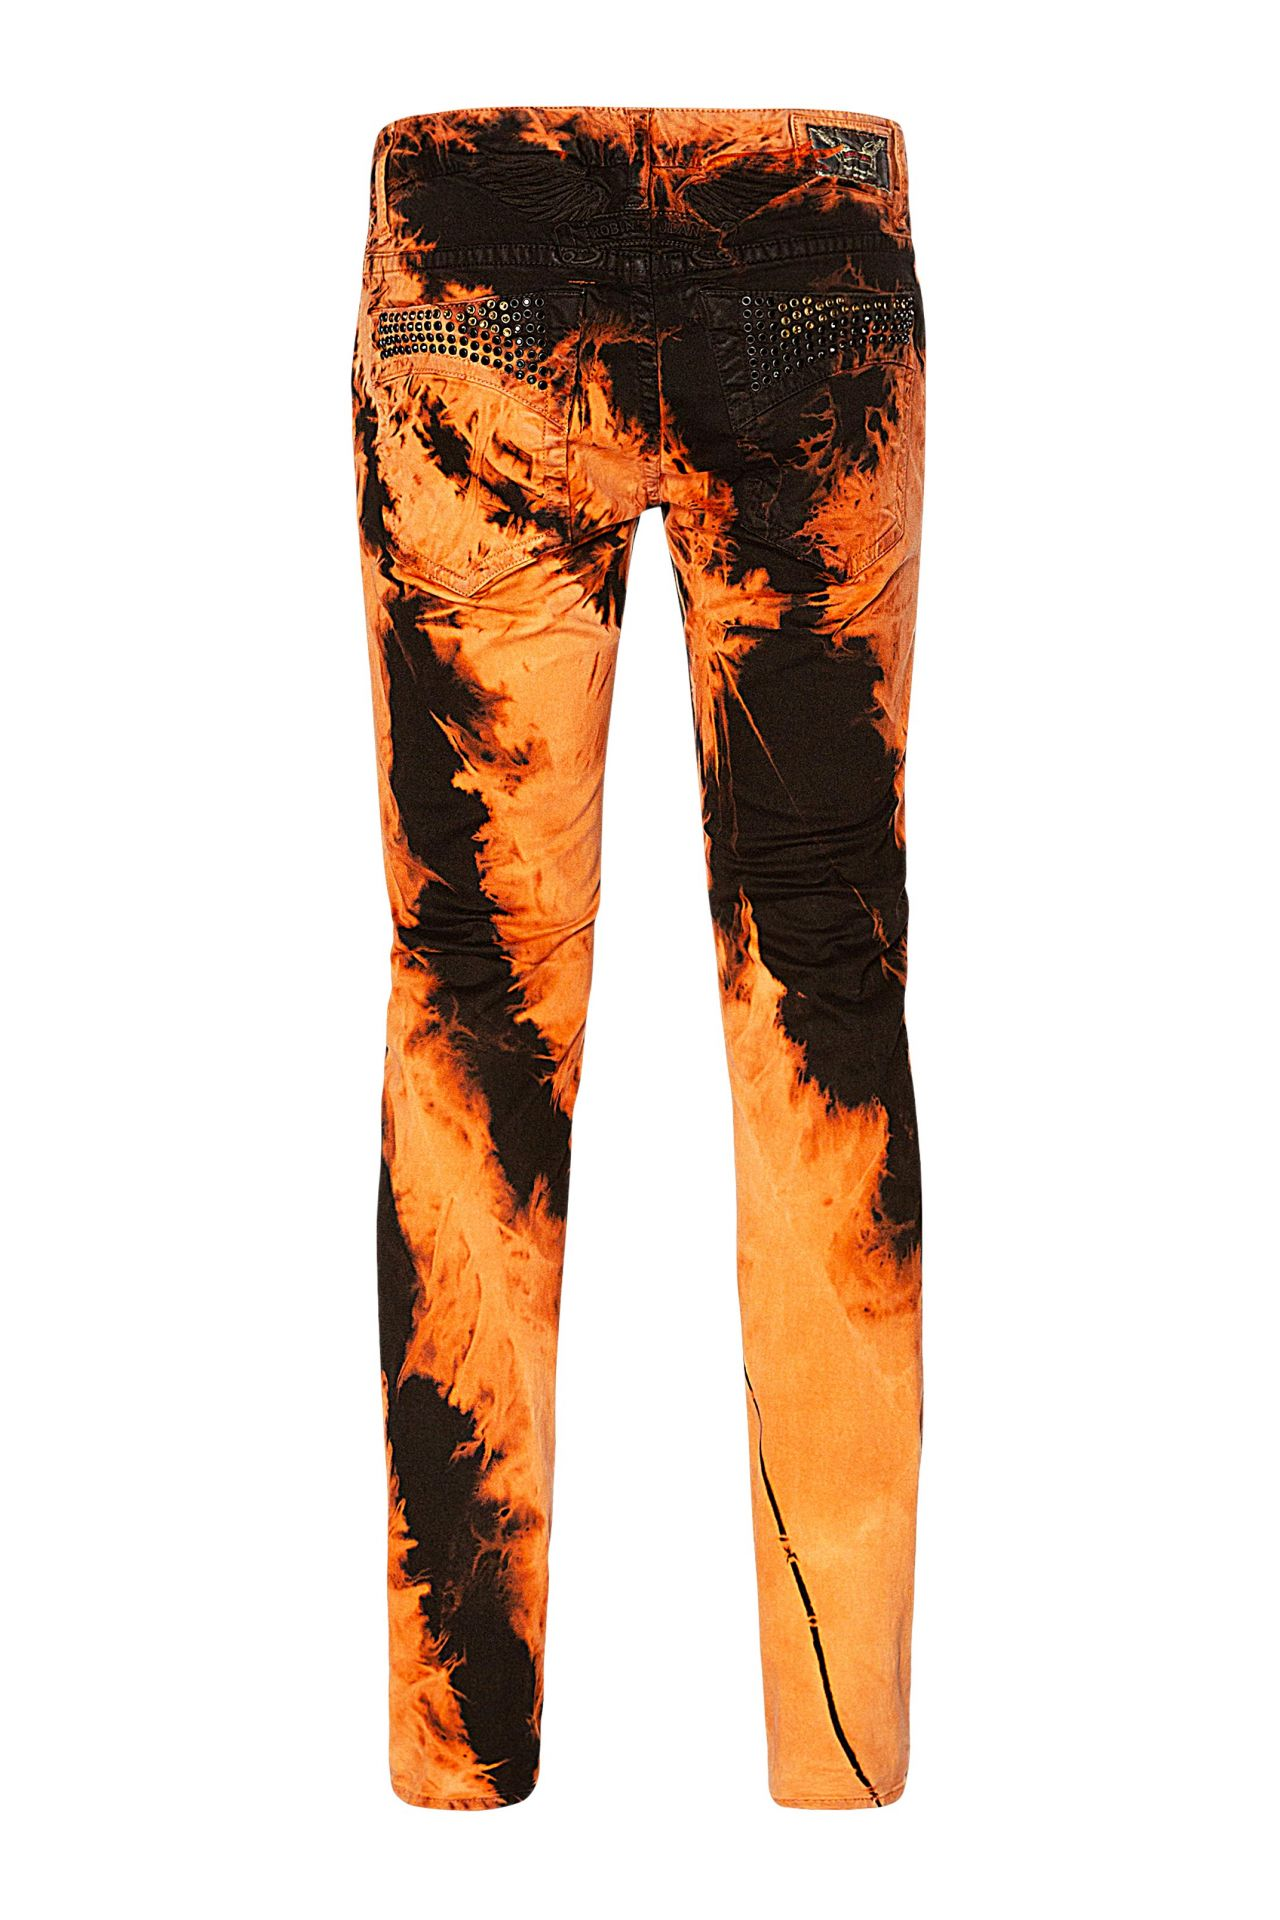 SKINNY JEANS IN TIE DYE ORANGE WITH CRYSTALS